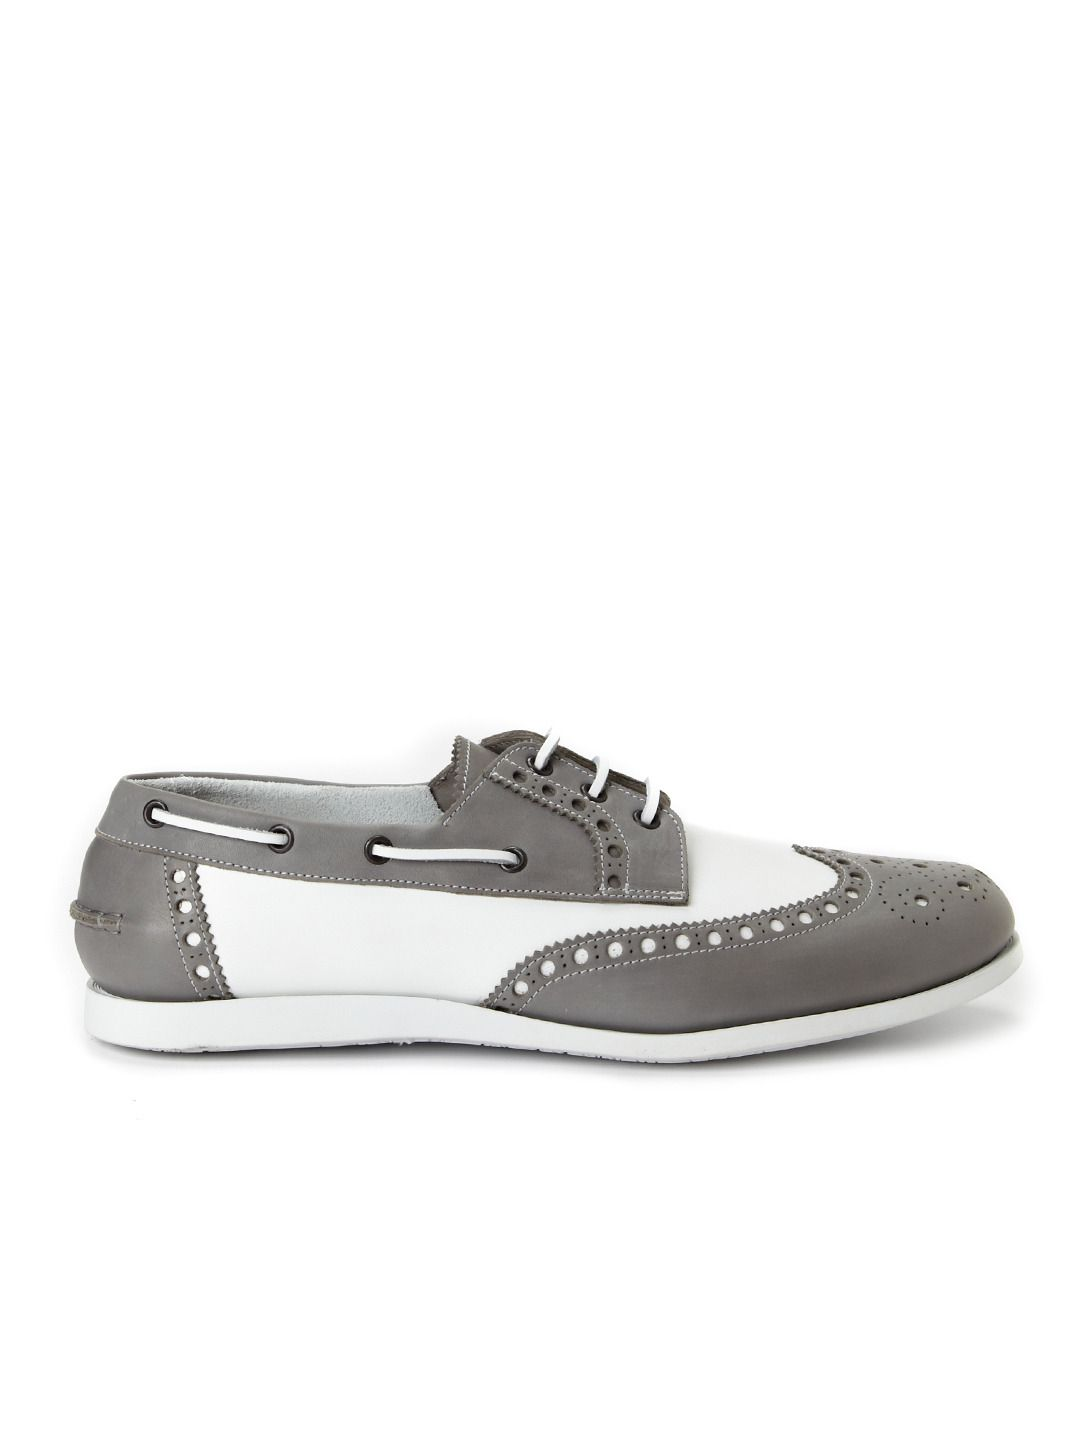 Rowland Wingtip Boat Shoes by Paul Smith at Gilt...the most interesting boat shoes i've ever seen...